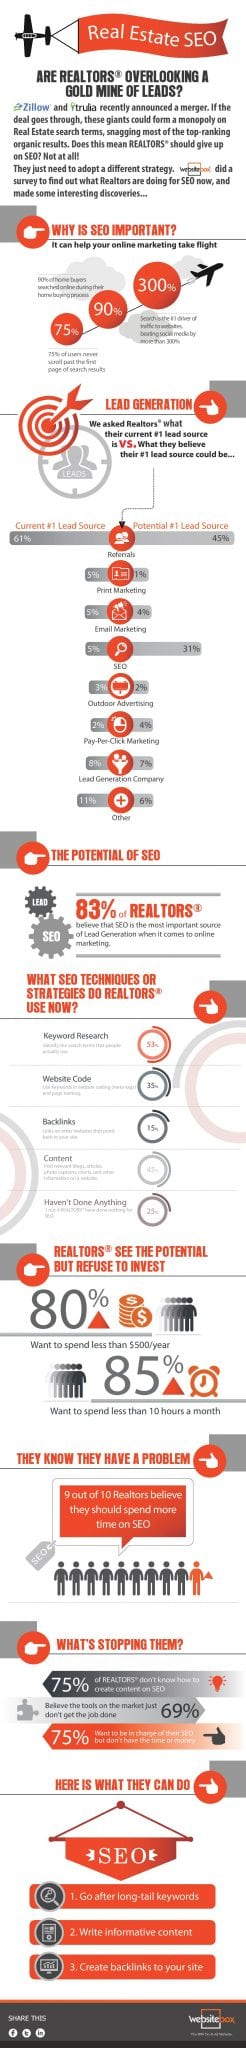 Photo of Real Estate SEO – Are Realtors Overlooking a Gold Mine of Leads? [INFOGRAPHIC]